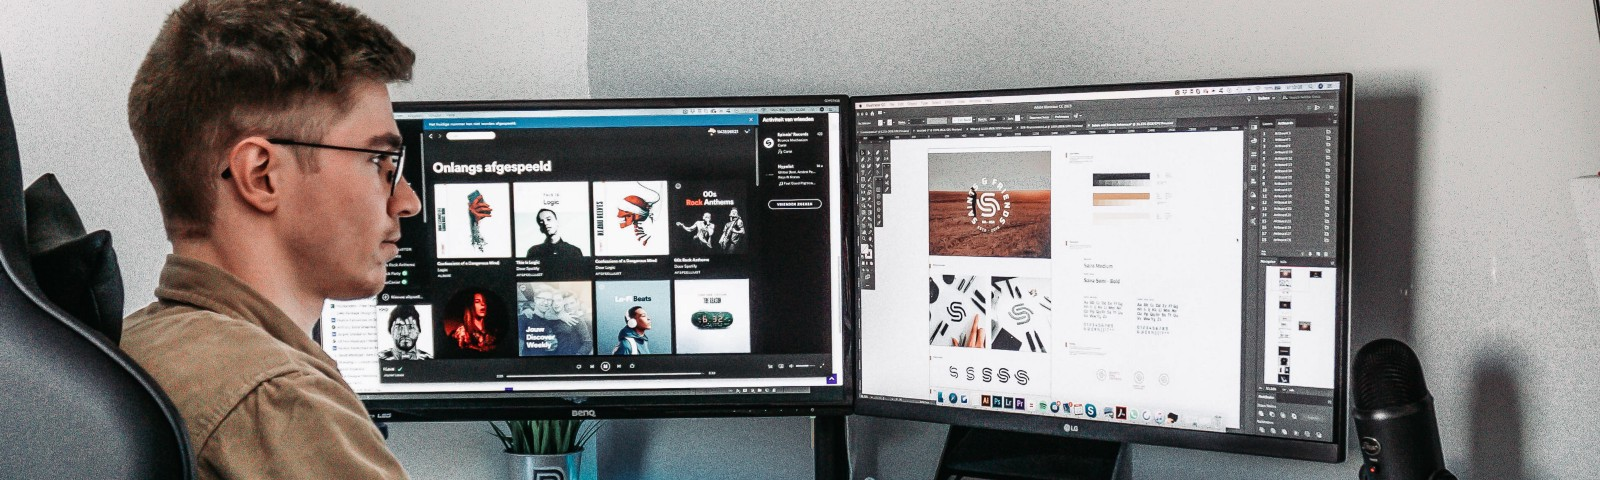 A designer is working in front of the computer